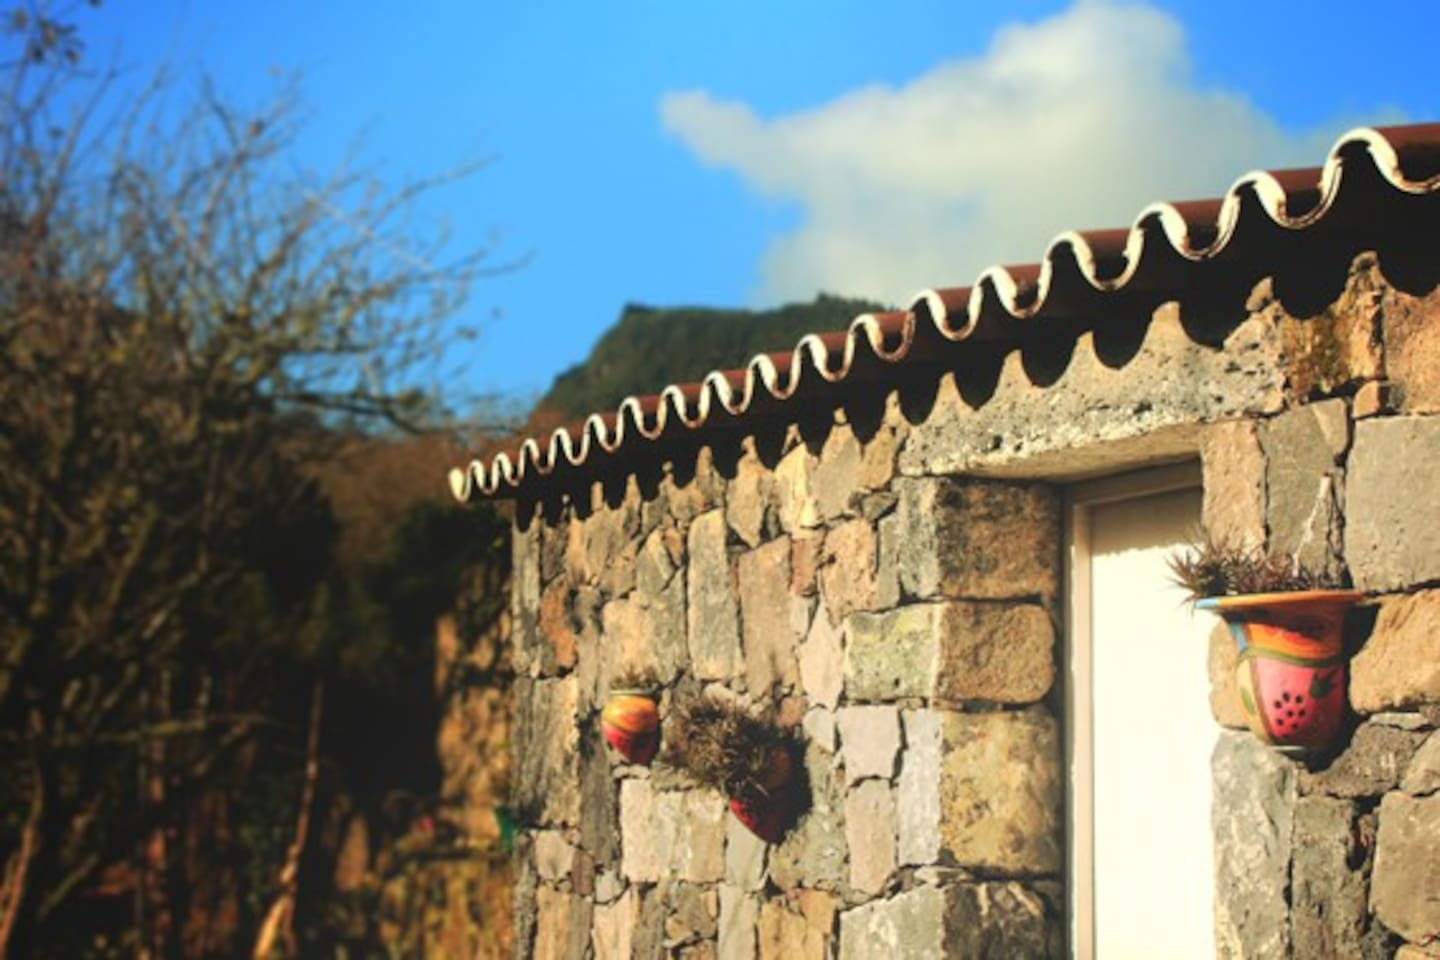 Garden's view - traditional  azorean stone wall.